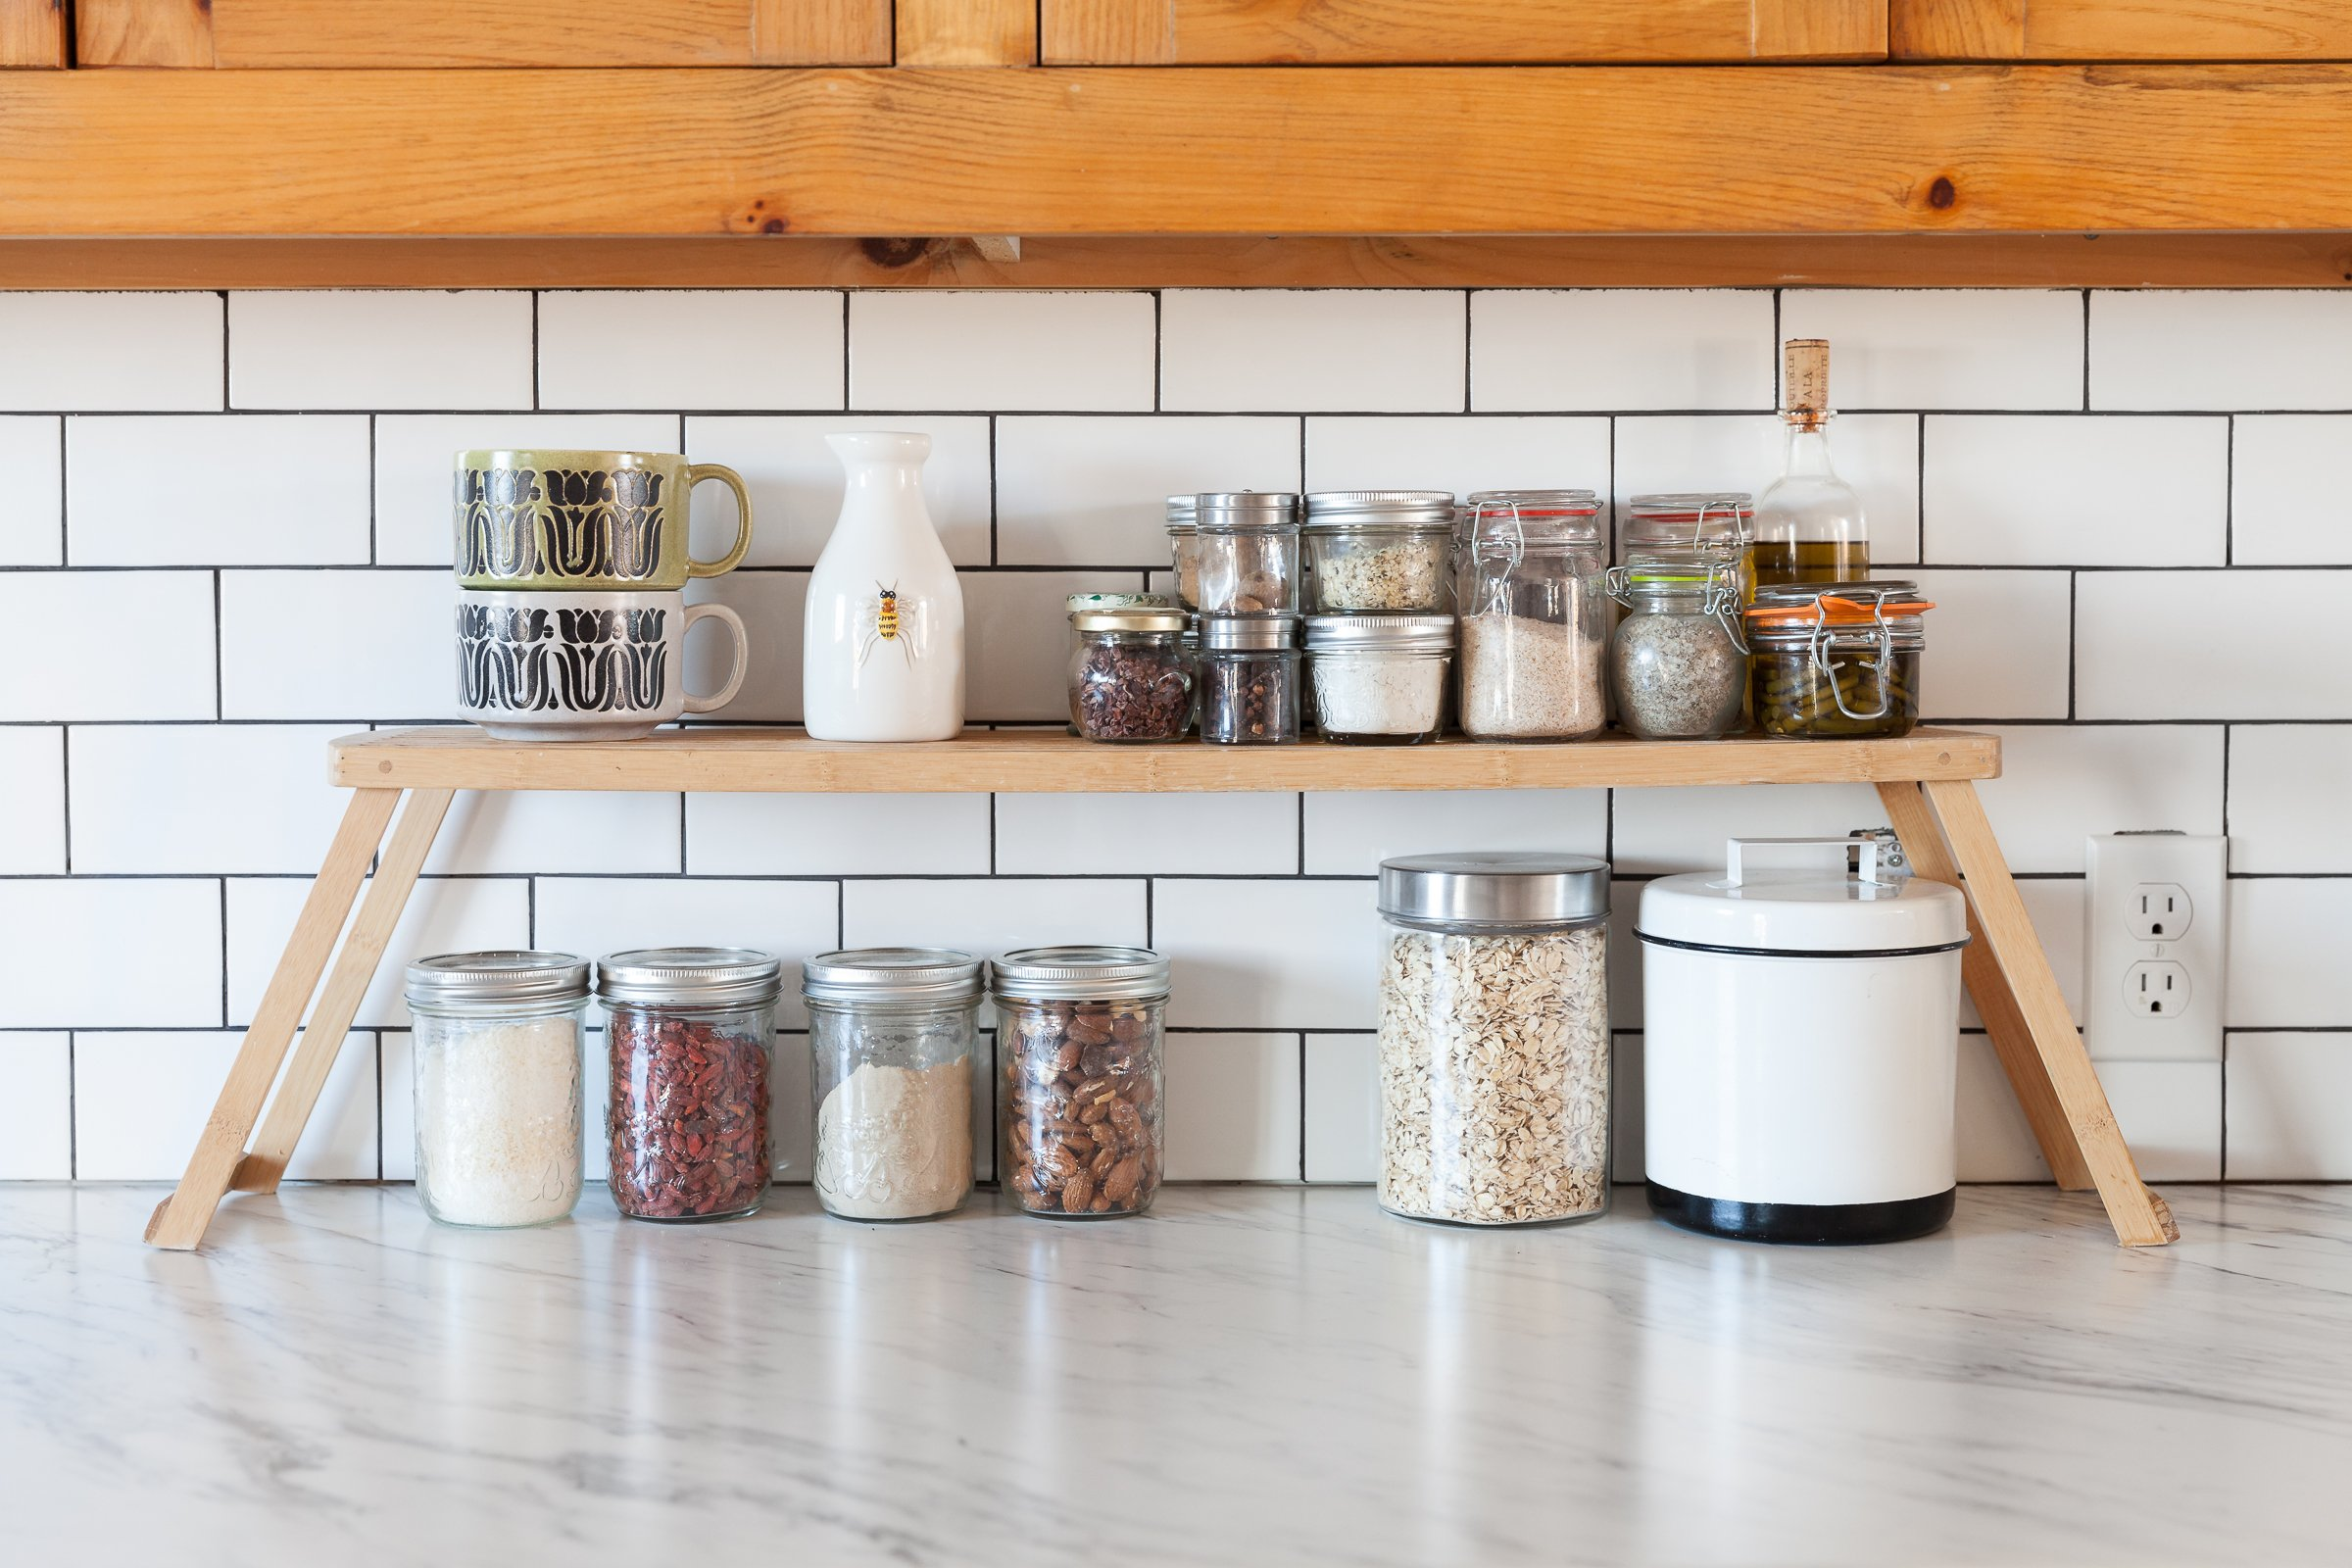 The 21 Best Storage Ideas for Small Kitchens | Kitchn